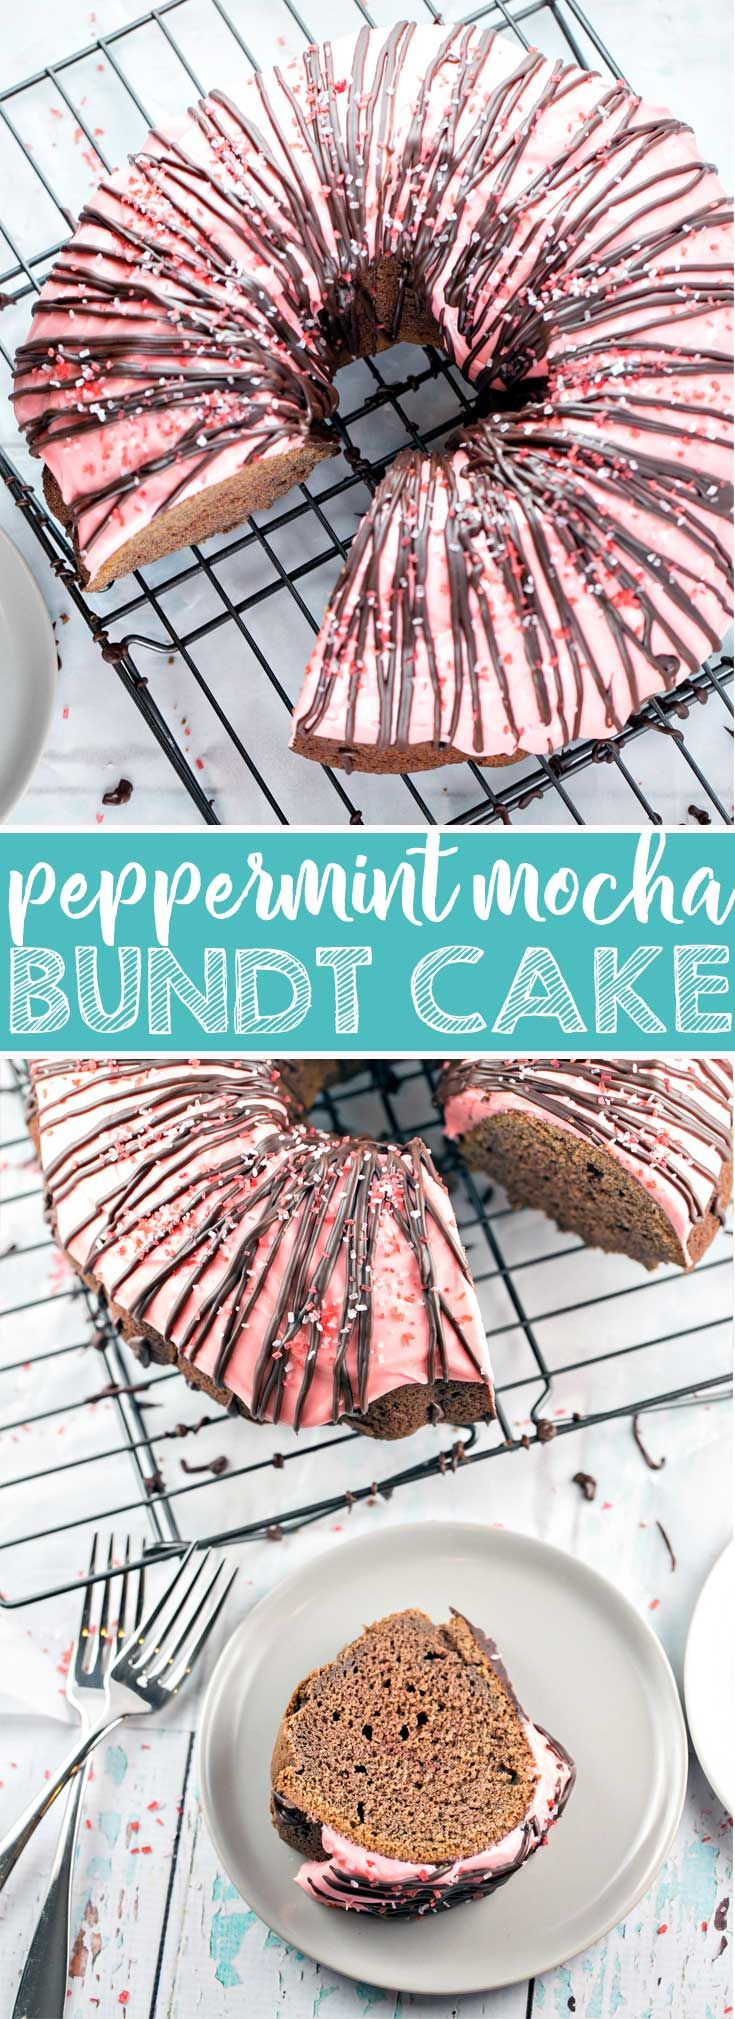 Peppermint Mocha Bundt Cake: rich chocolate cake, peppermint cream cheese frosting, and a chocolate ganache drizzle - this one-bowl mix by hand bunt cake is perfect for holiday entertaining.  | Posted By: DebbieNet.com